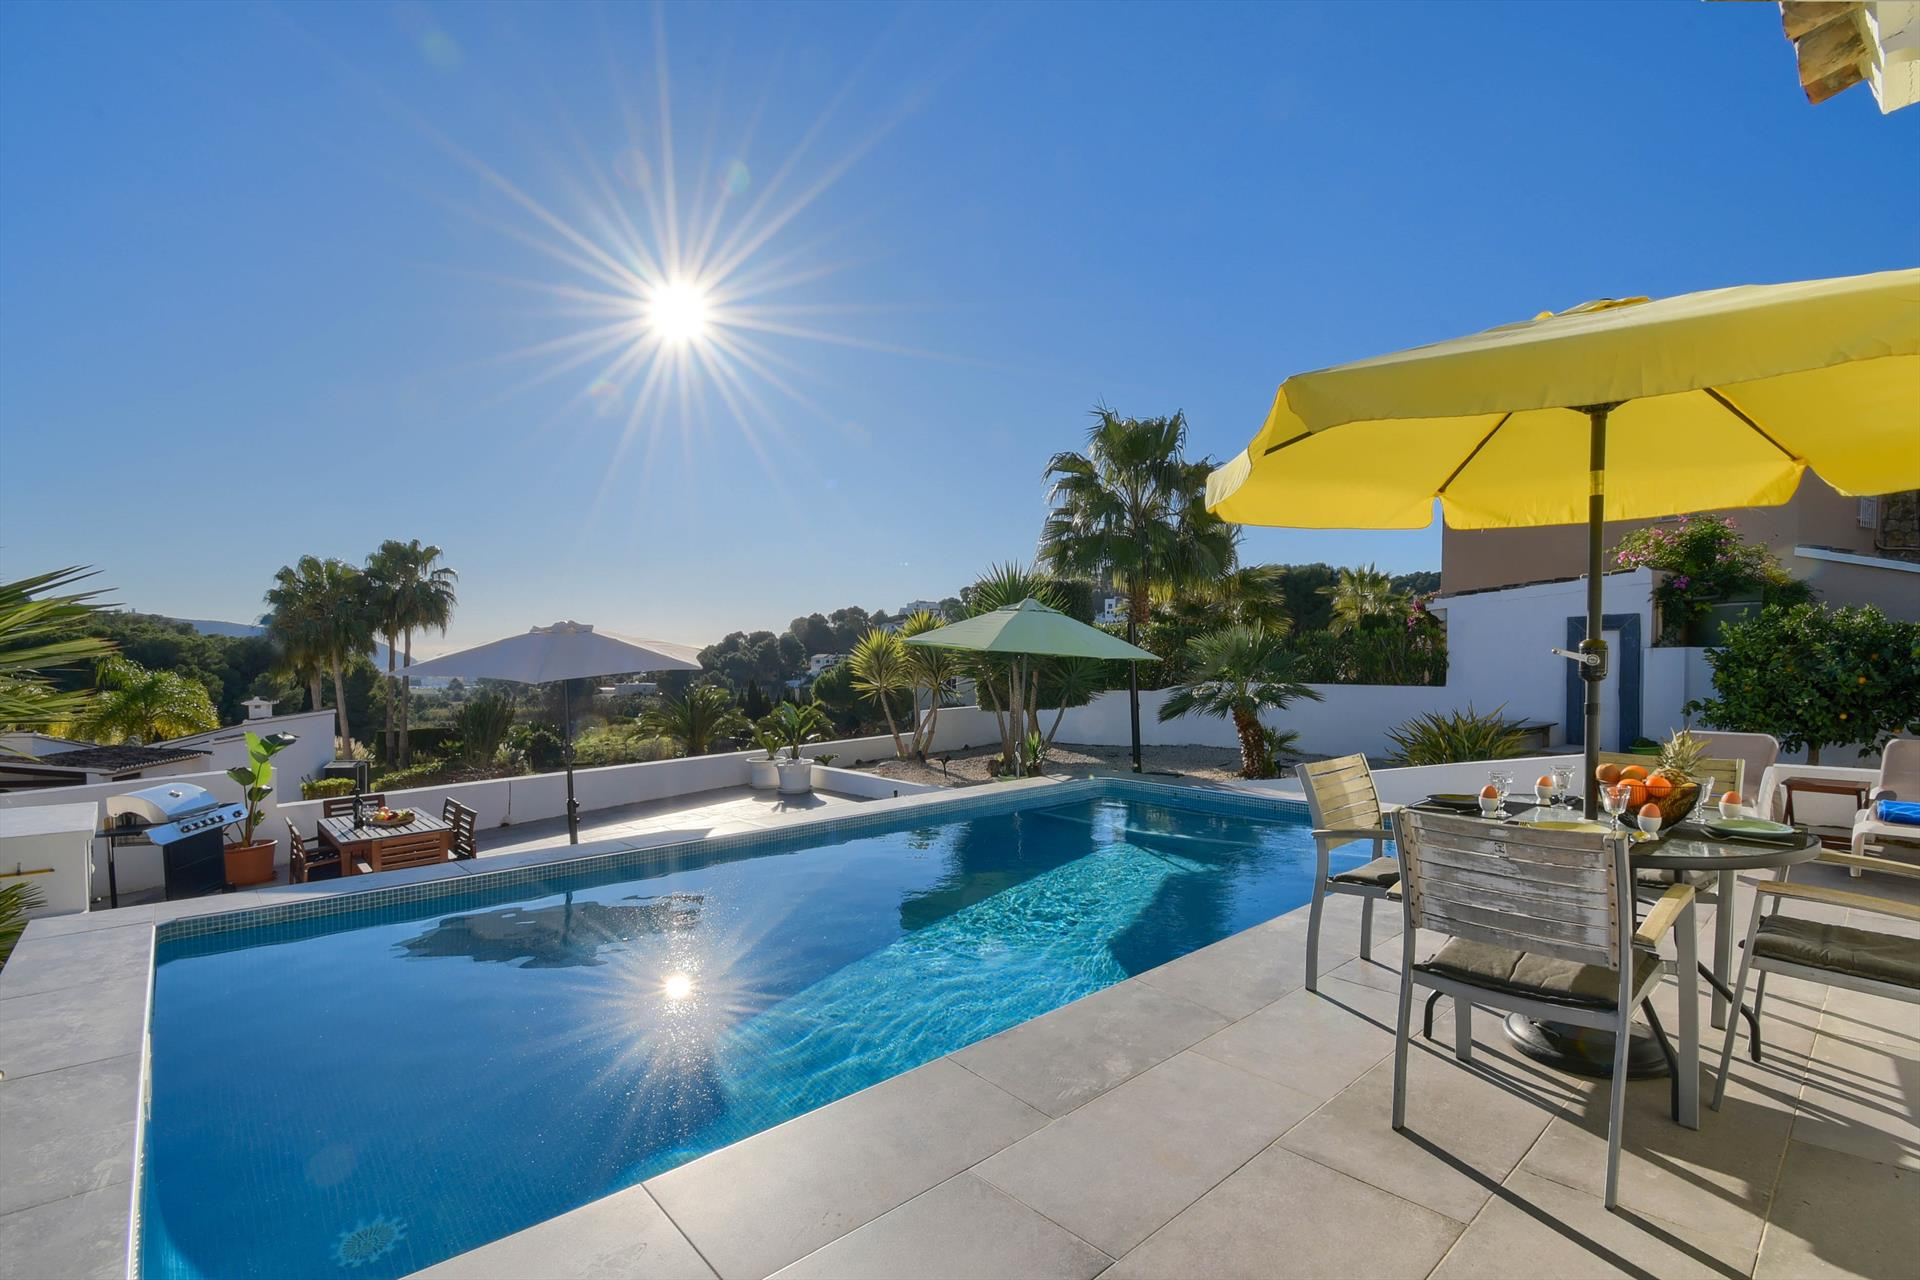 Mi Sueño, Villa  with private pool in Moraira, on the Costa Blanca, Spain for 6 persons...